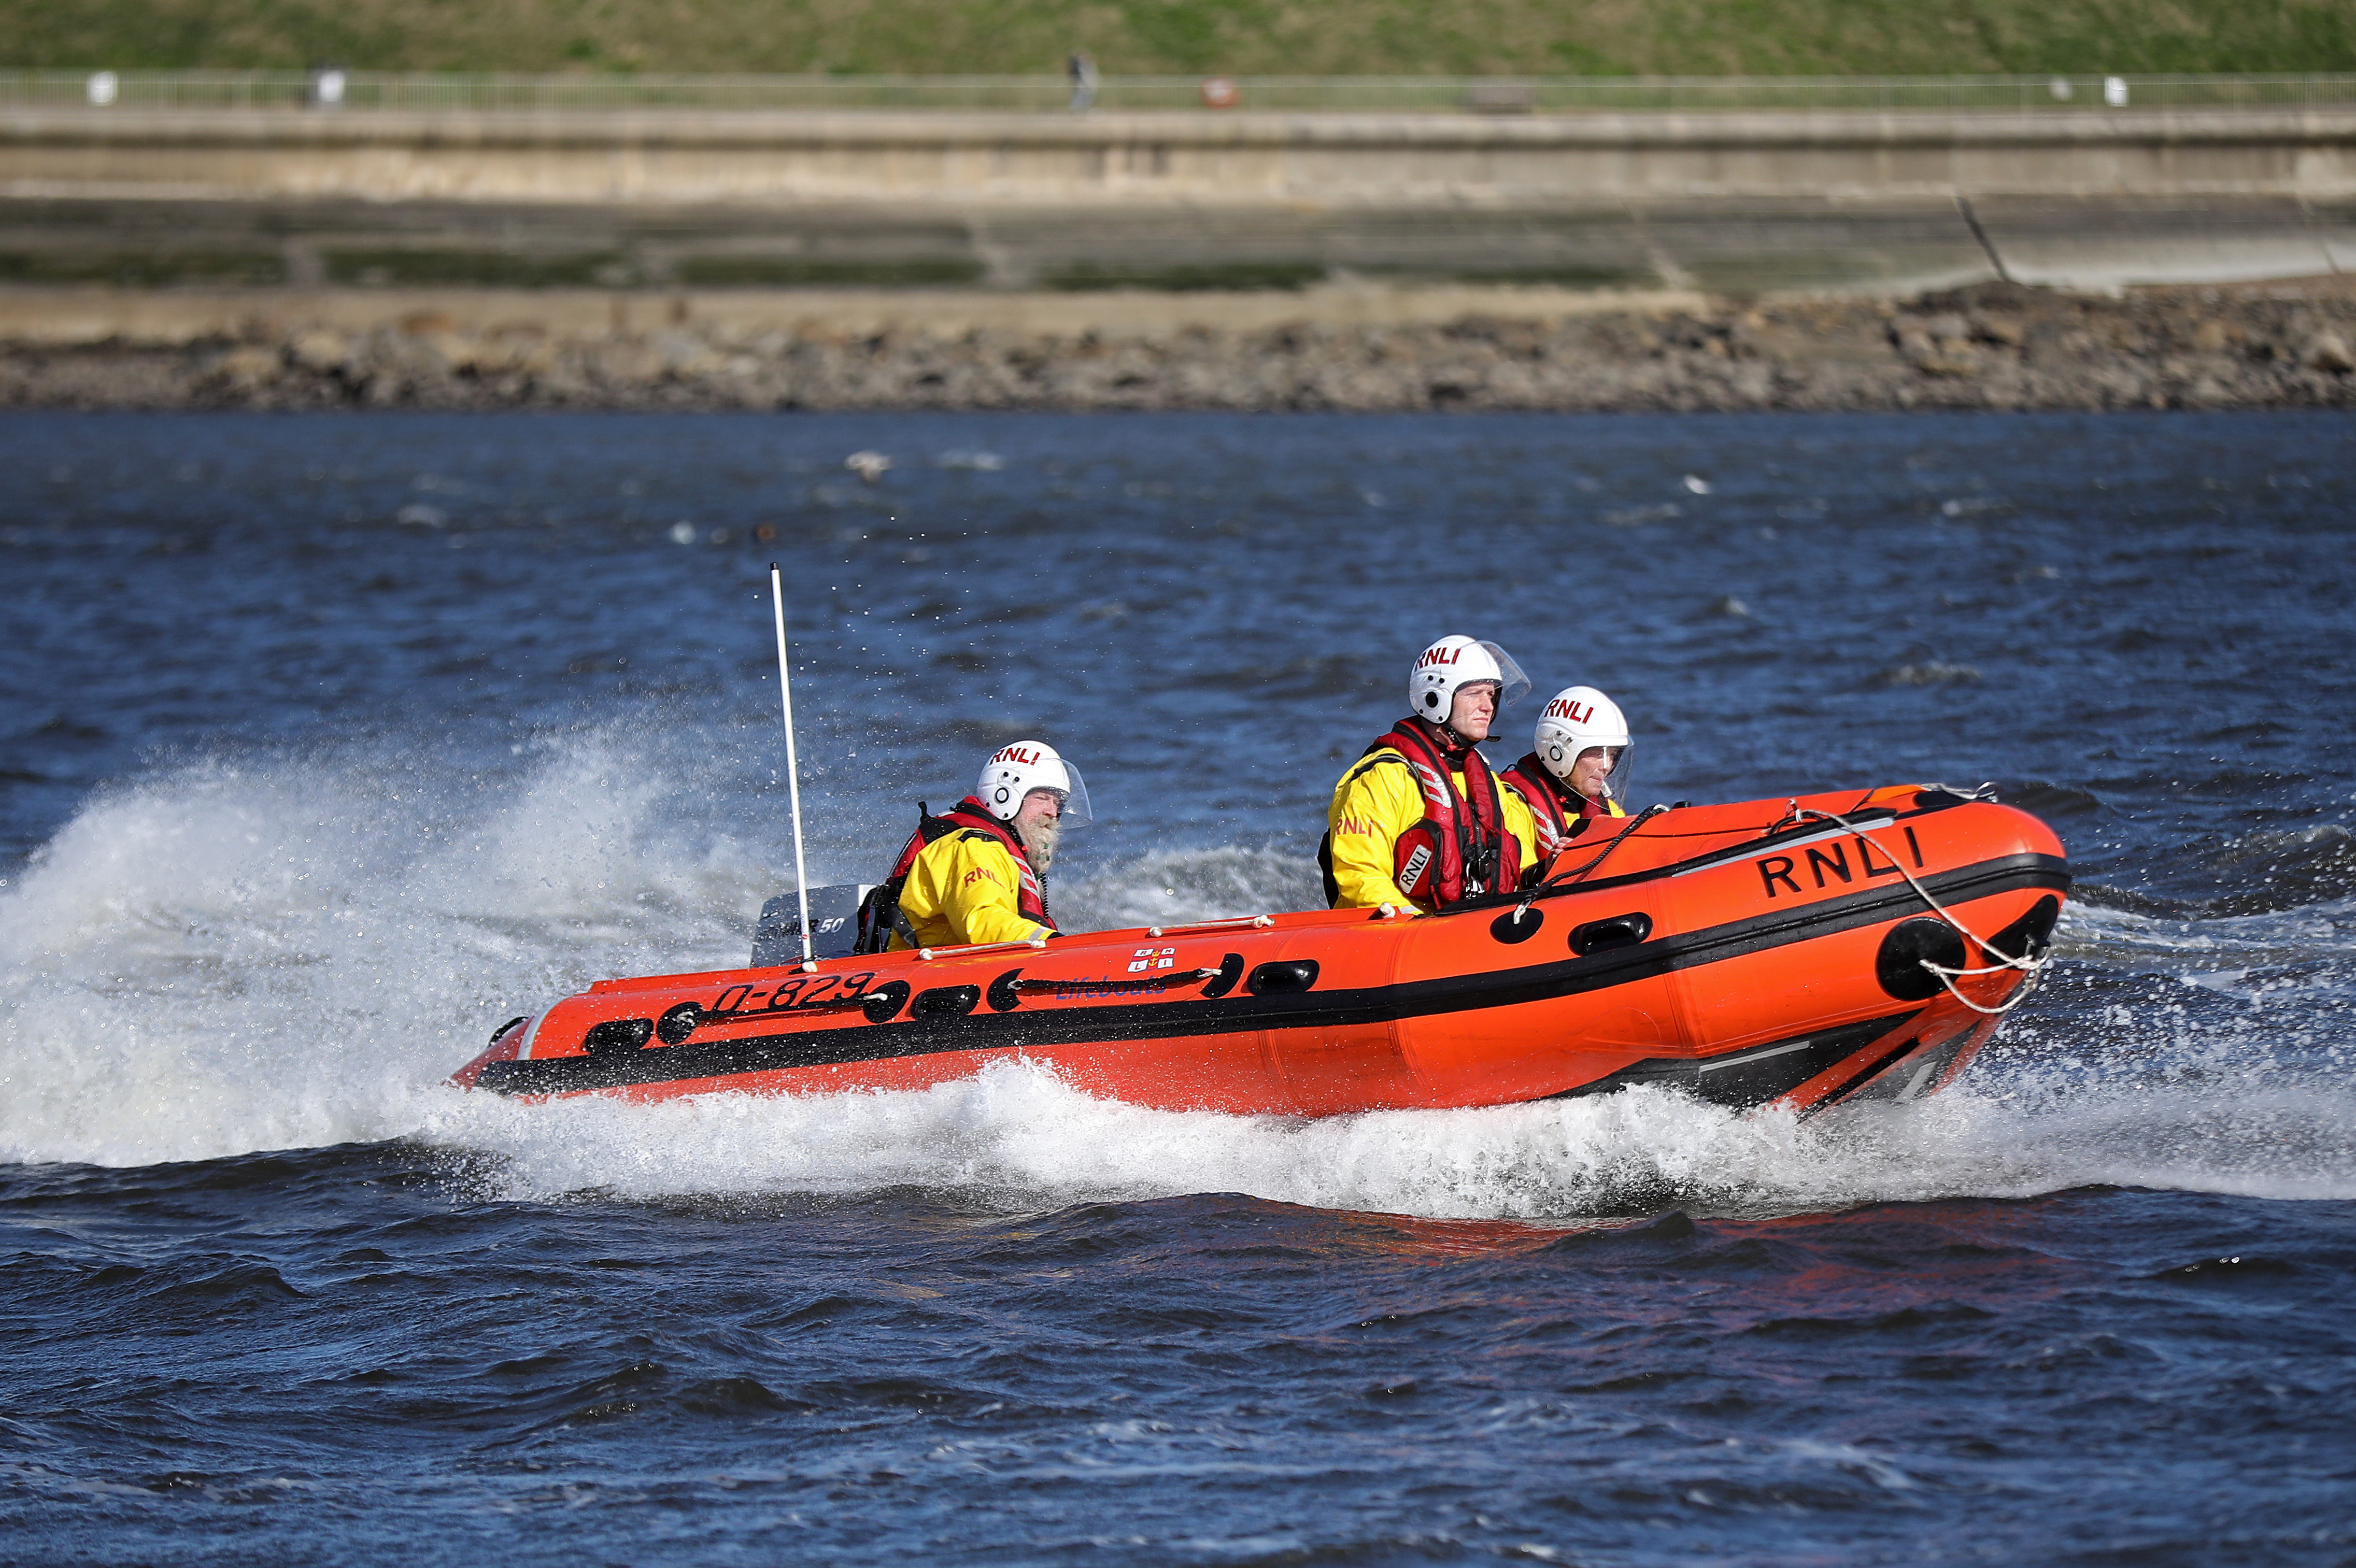 Stock image of Tynemouth RNLI's inshore lifeboat